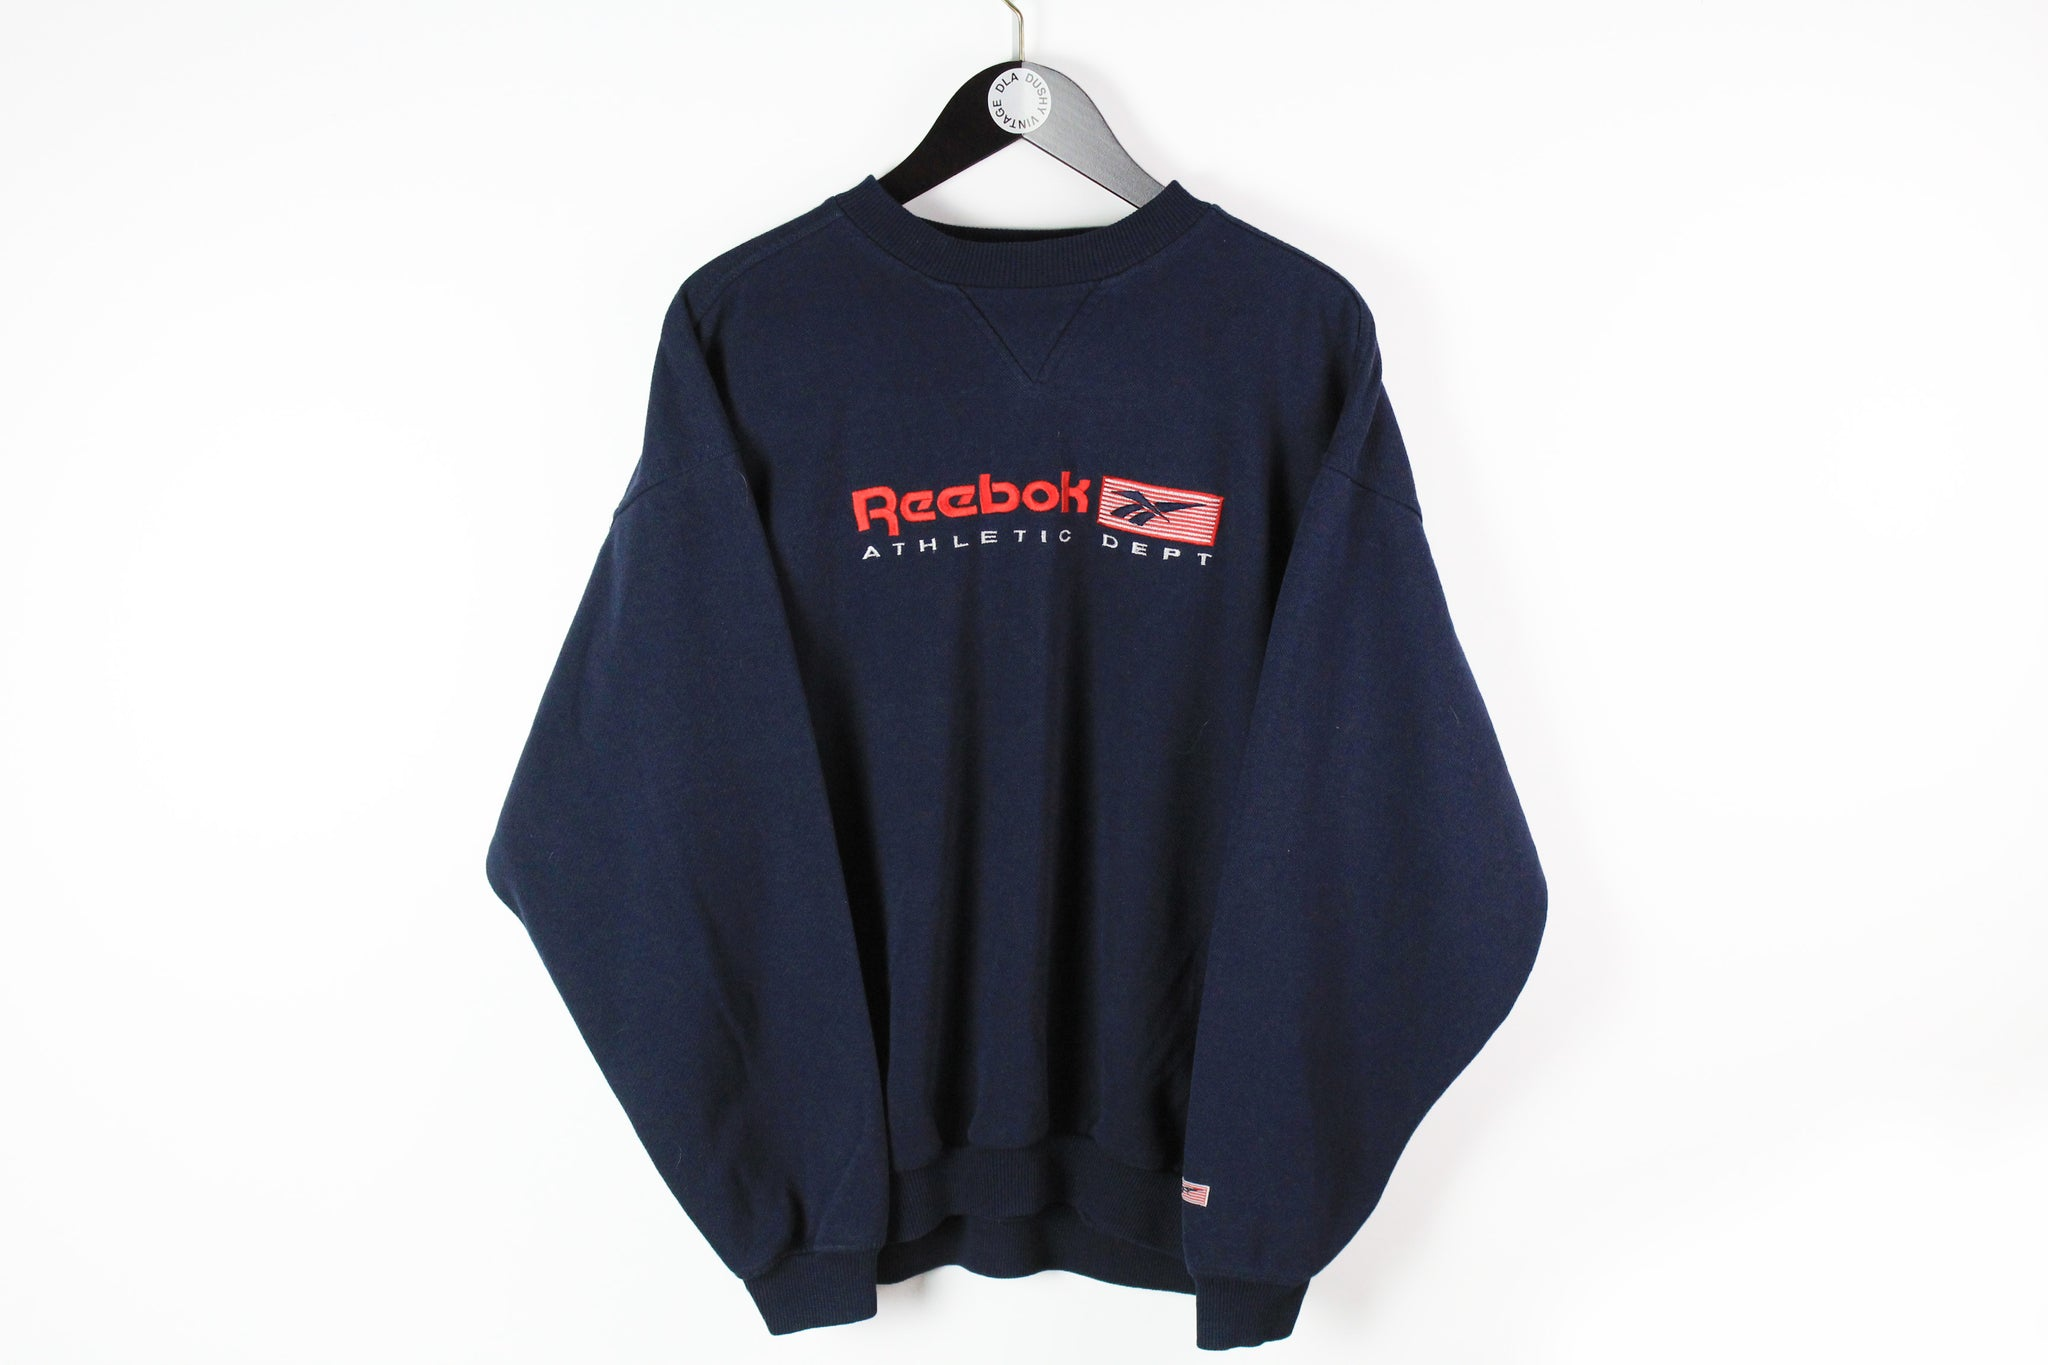 Vintage Reebok Sweatshirt Large navy blue big logo 90s sport athletic dept retro style jumper